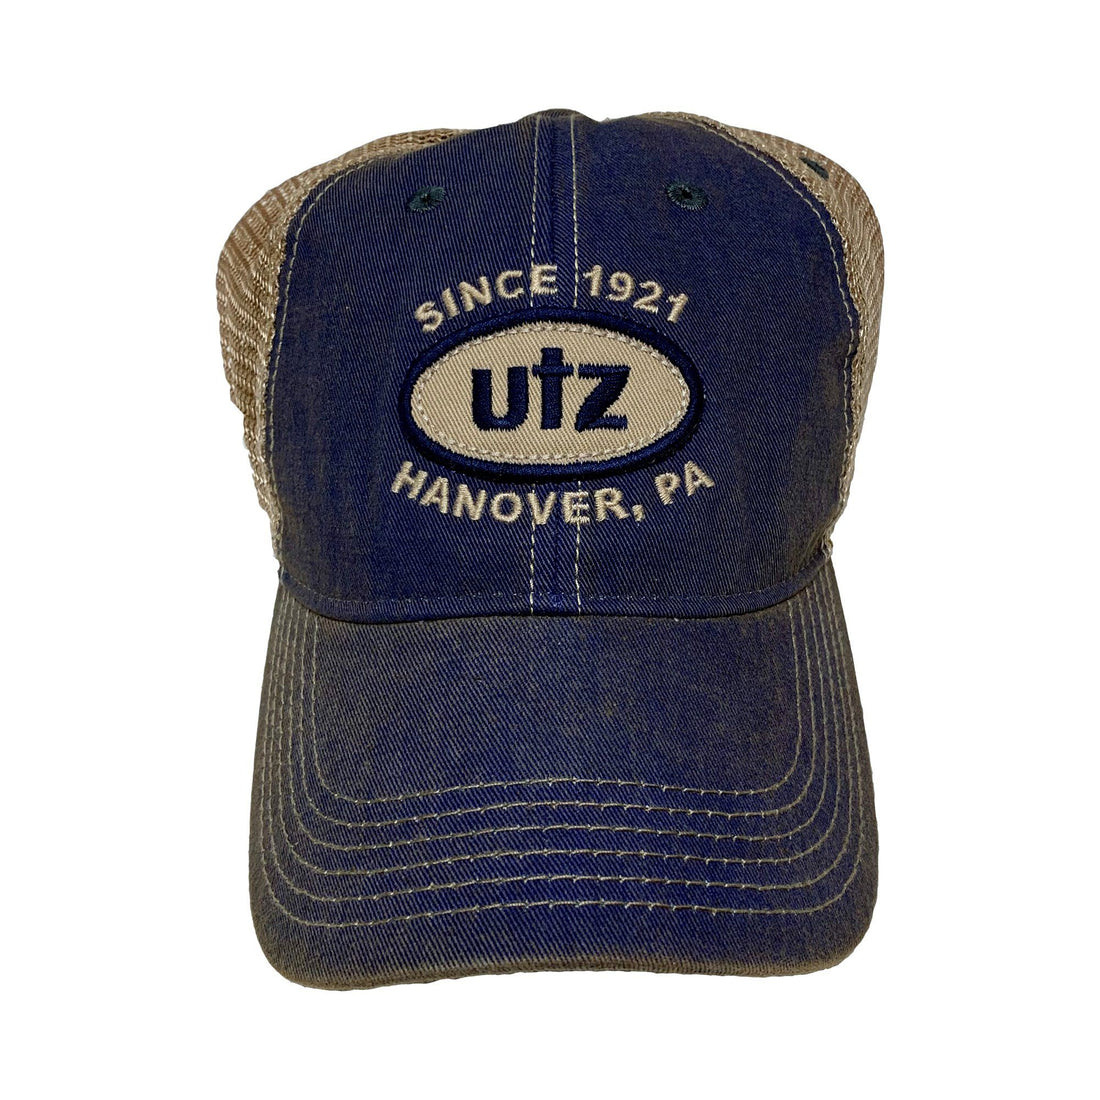 Trucker Style Hat With Utz Showcase Design Gear And Novelties Utz Blue